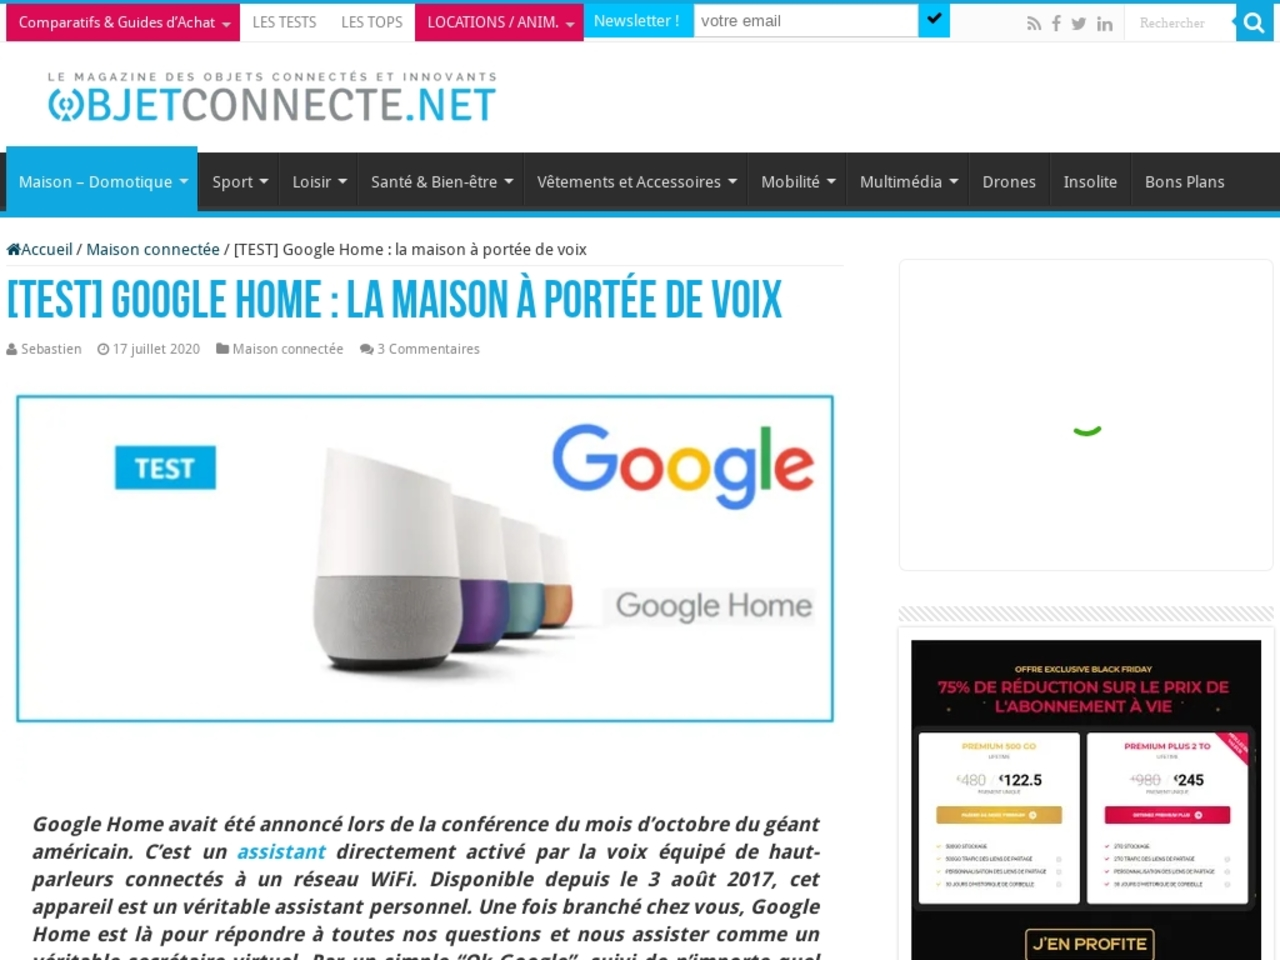 OBJETCONNECTE.NET, guide et test sur le Google Home